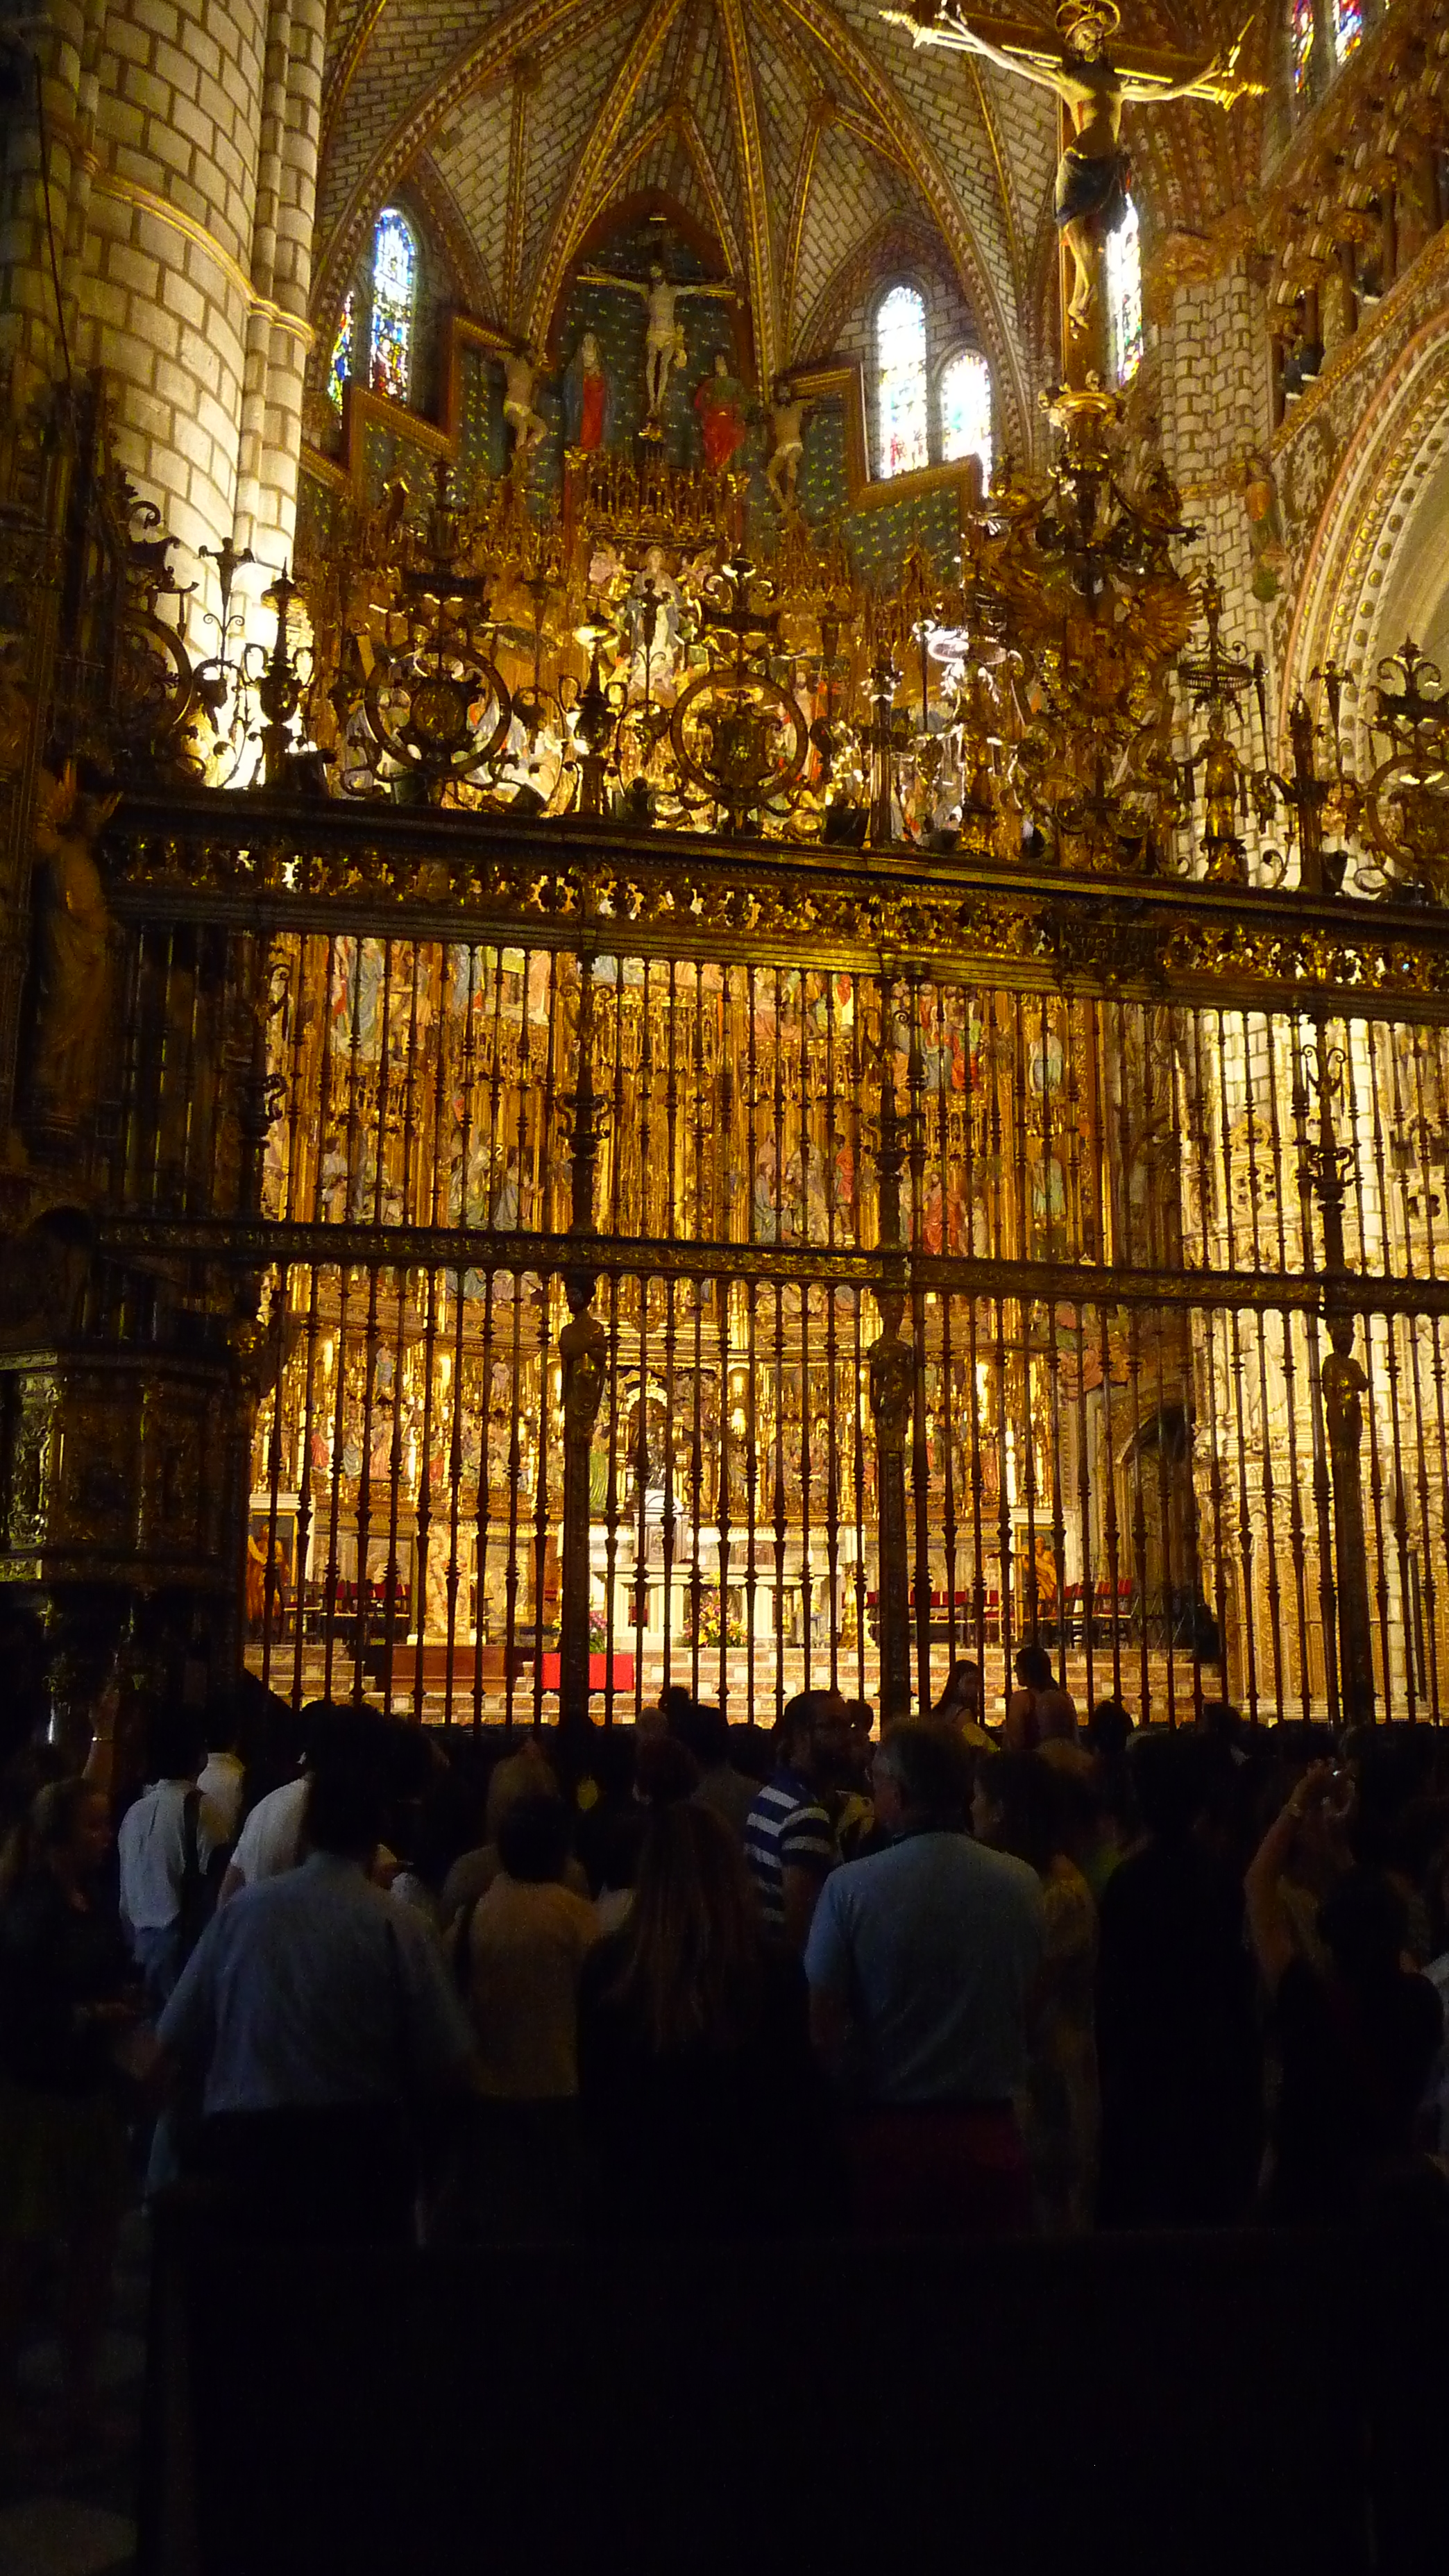 The High Altar in Toledo's Cathedral-gold plated iron grille